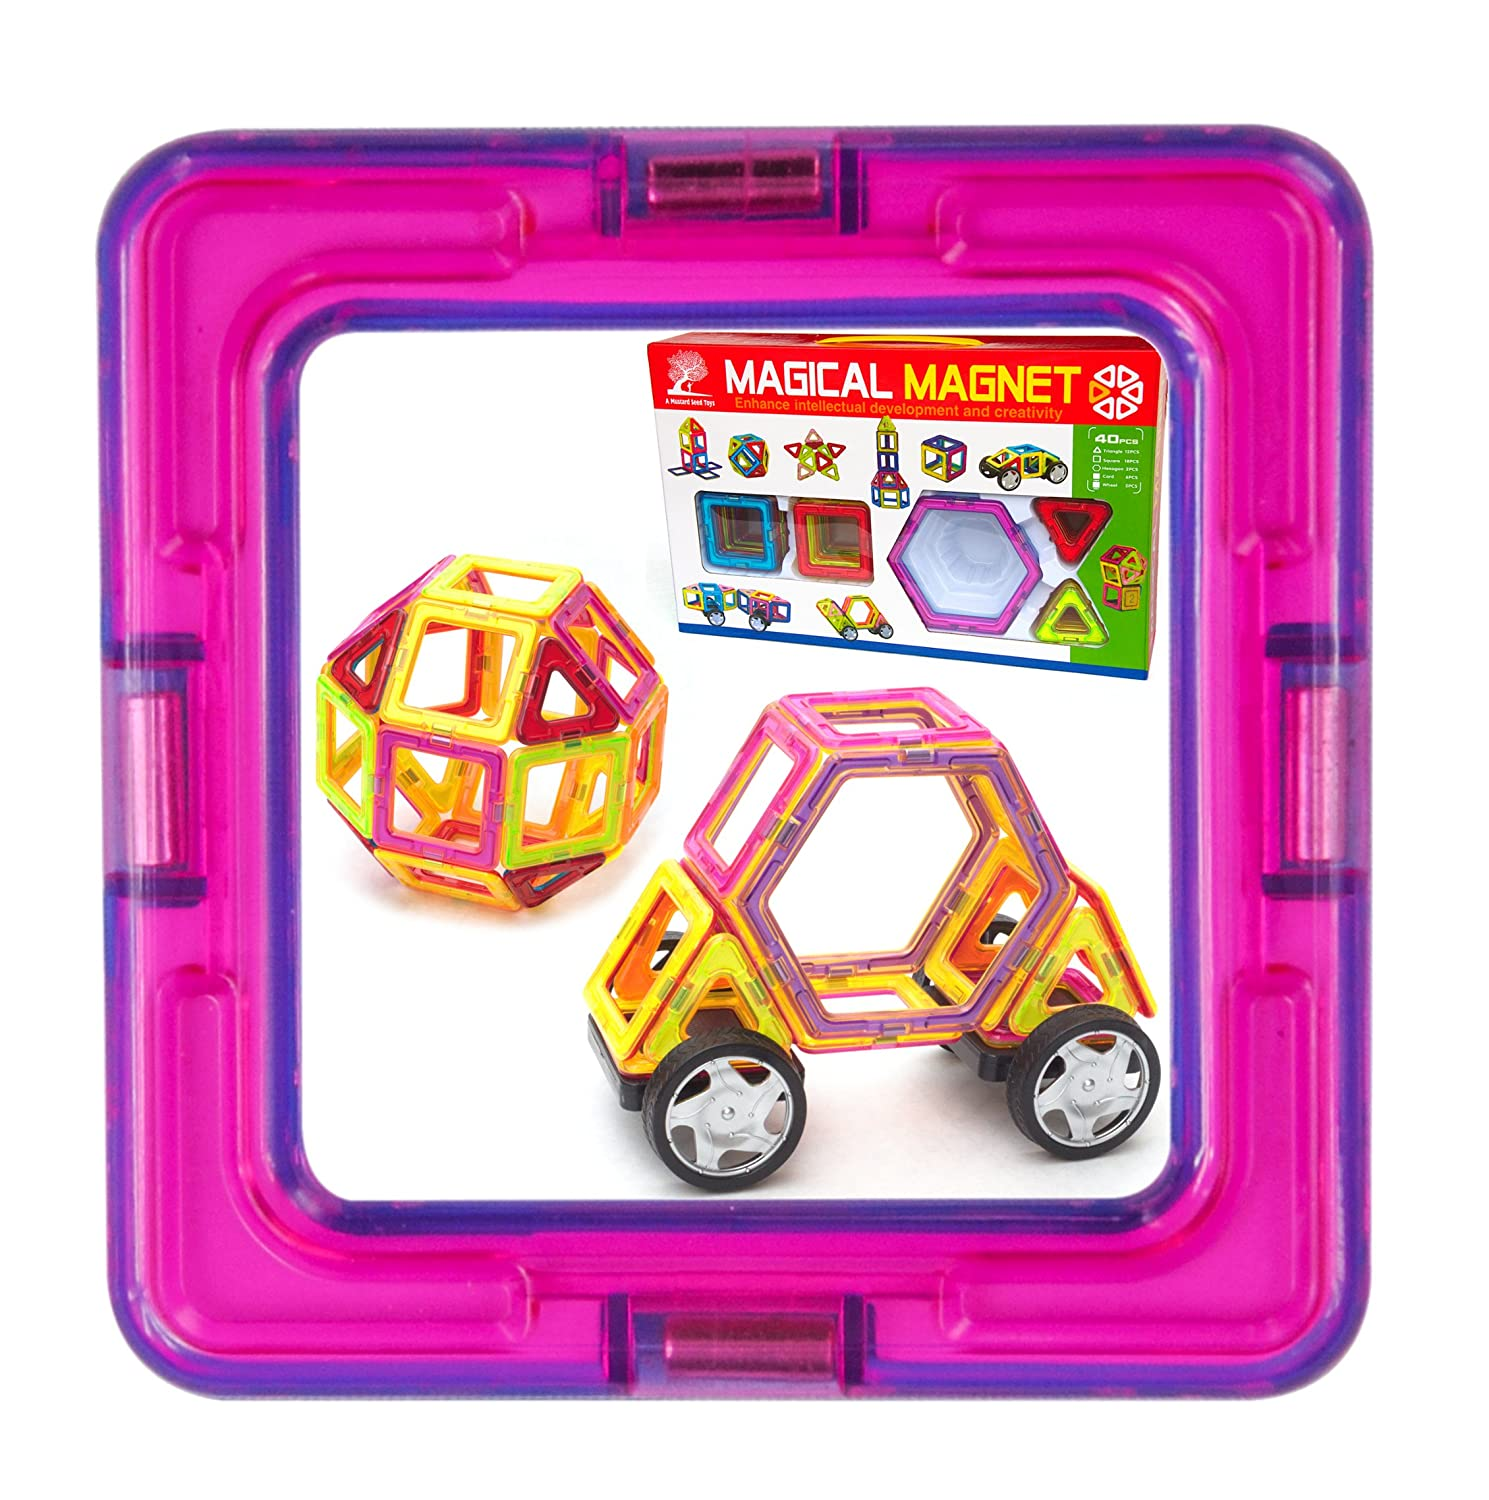 Magnetic Tile Building Set - 40 Large Tiles with Wheels, Educational Toys that Teach Colors, Shapes, and Patterns; Build Cars and Trucks for Boys or Castles for Girls, Fun for Toddlers to Teens Review